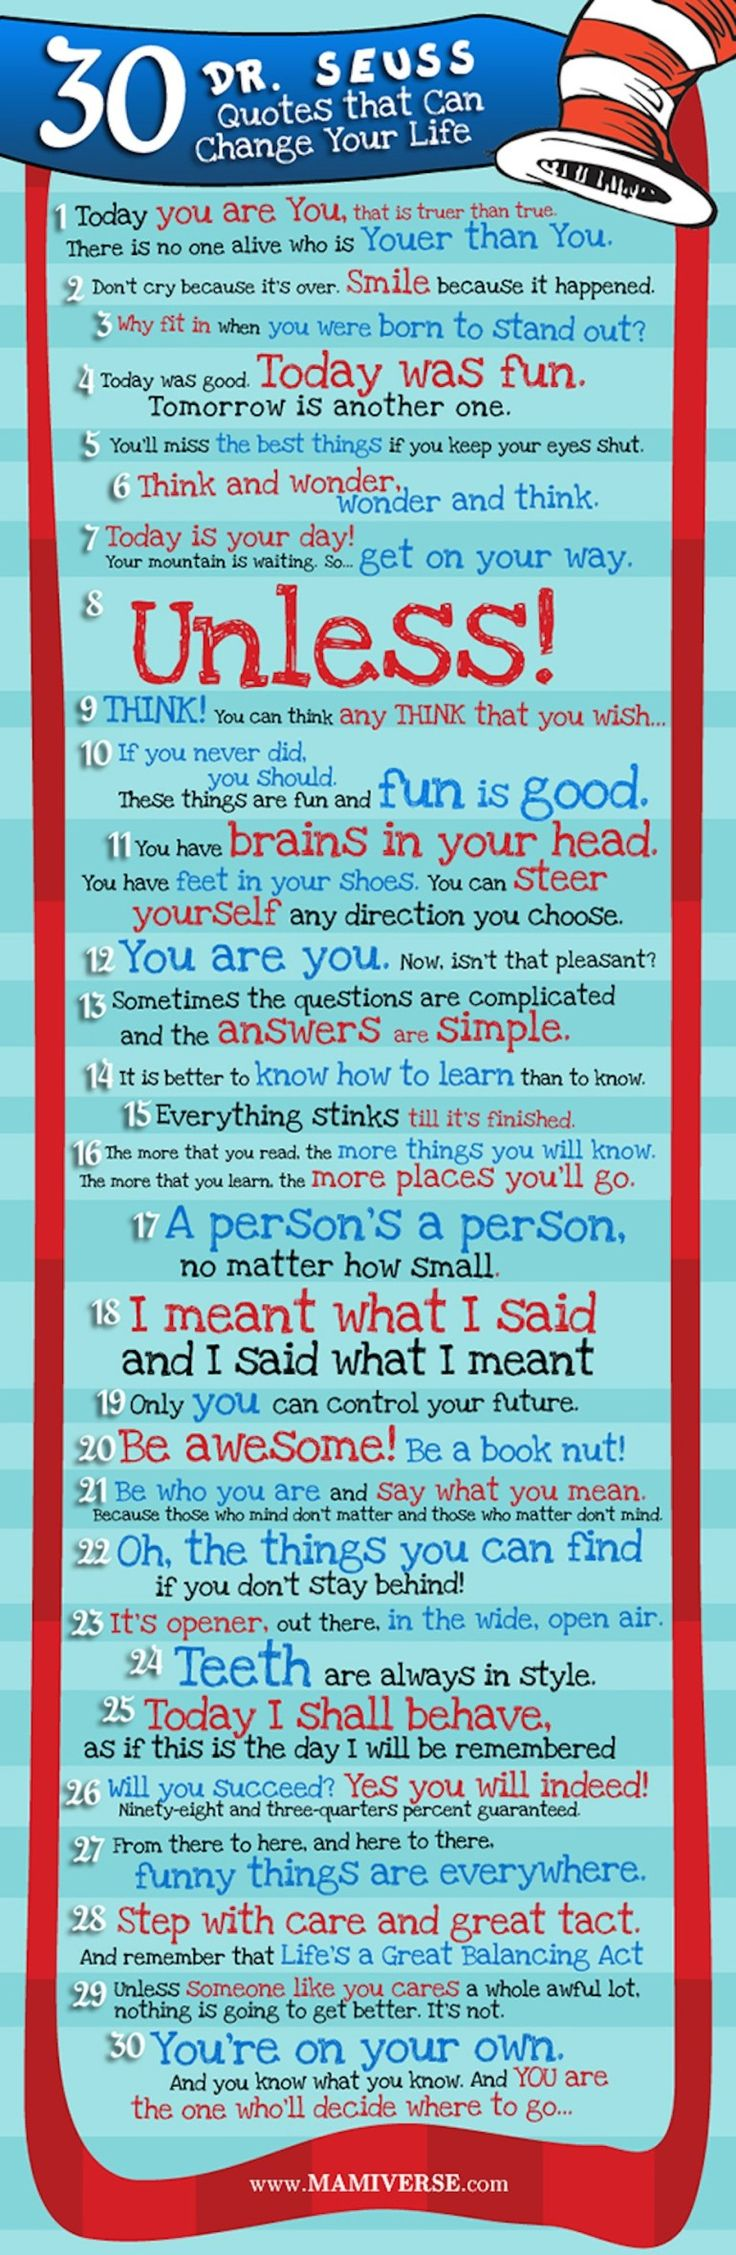 The Best Dr. Seuss Quotes - mindbodygreen